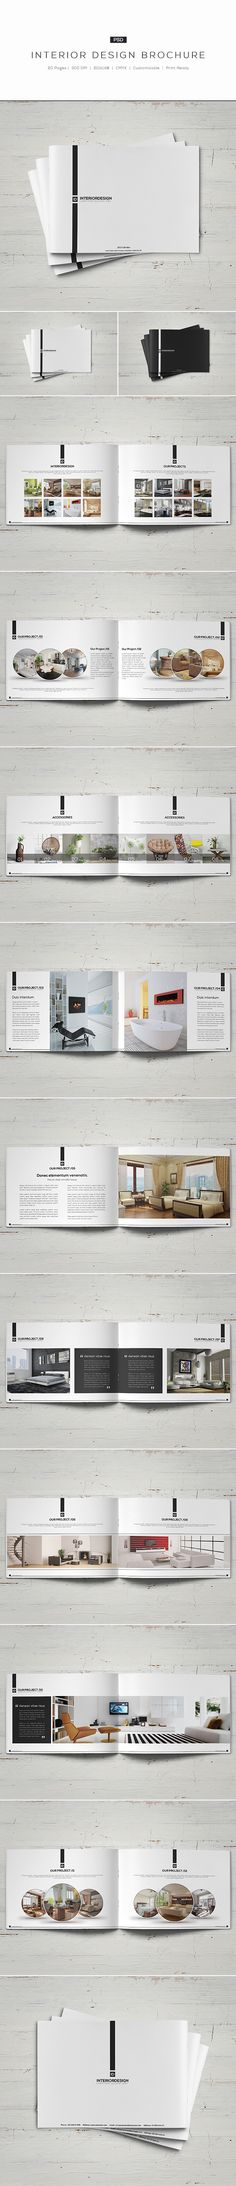 Interior Design Brochure on Behance                              …